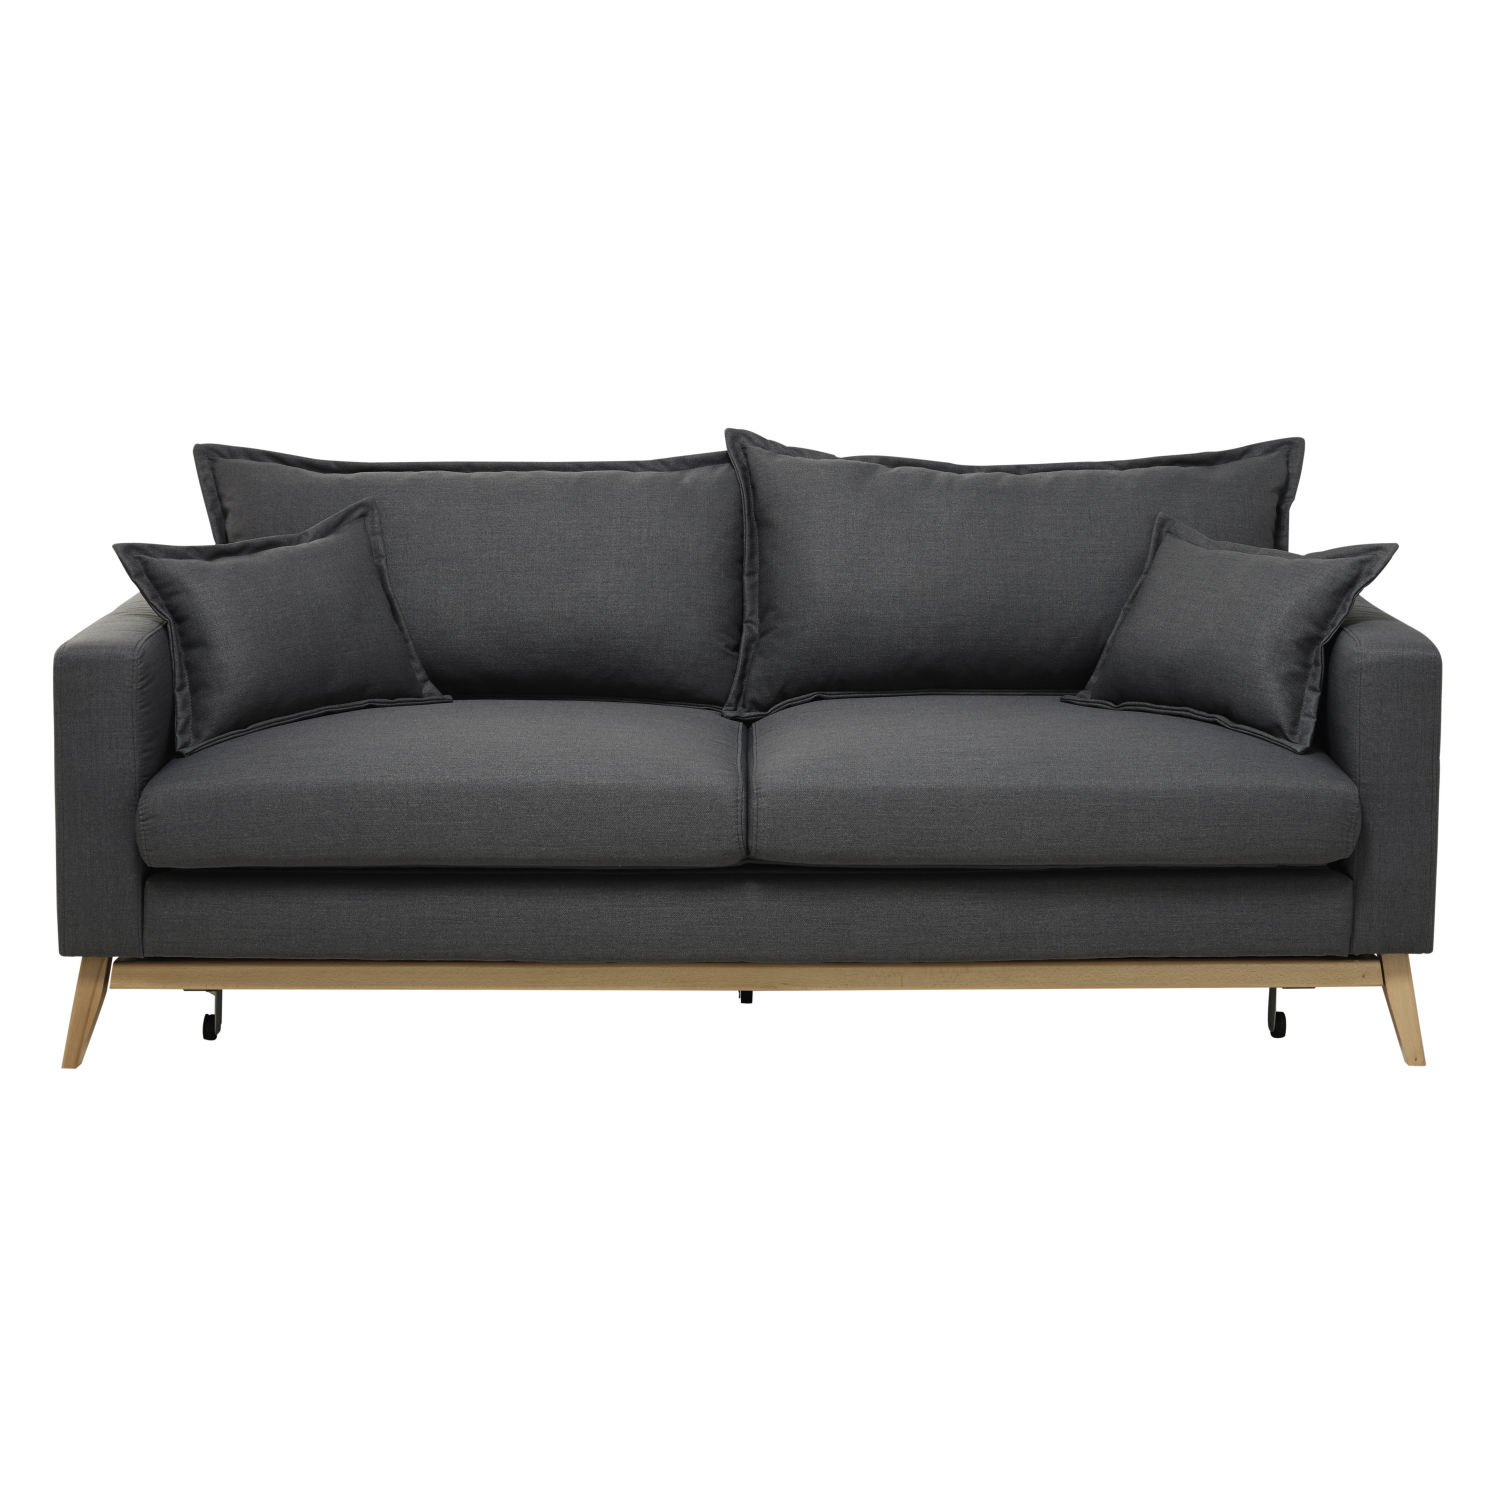 3 seater fabric sofa intex pull out dimensions bed in slate grey duke maisons du monde